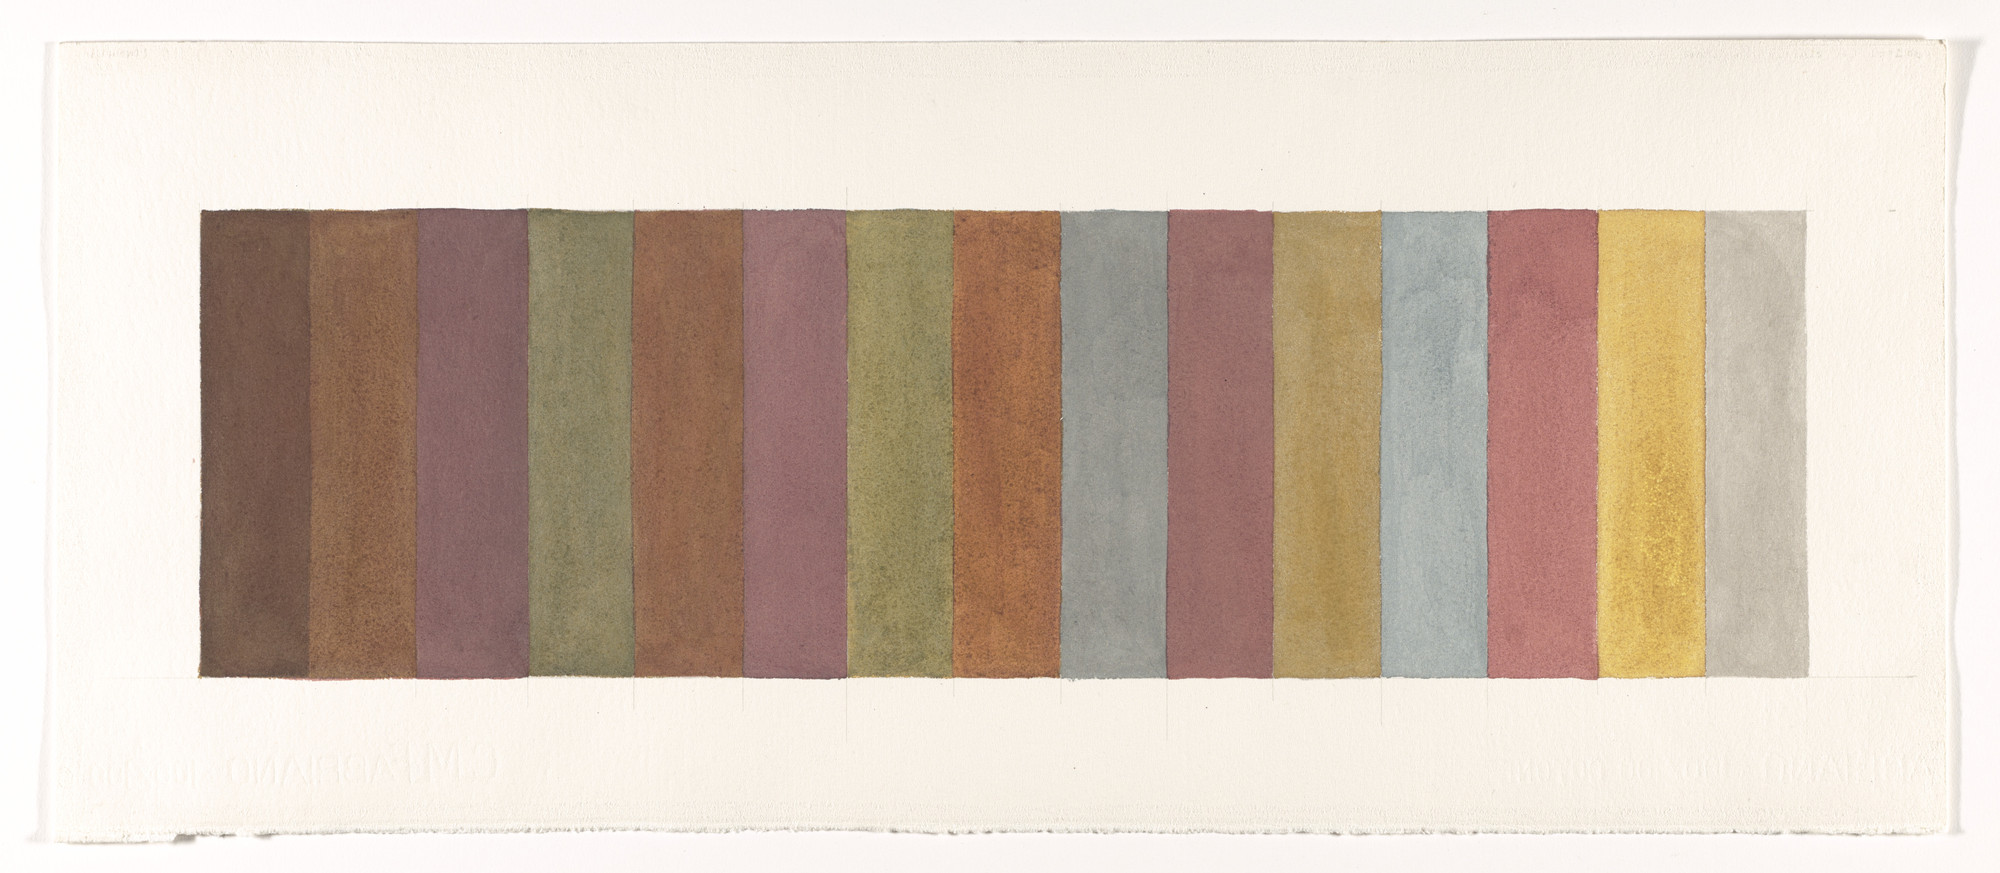 Sol LeWitt. All One-Two-Three- and Four-part Combinations of Four Colors, Fifteen Vertical Parts. 1984